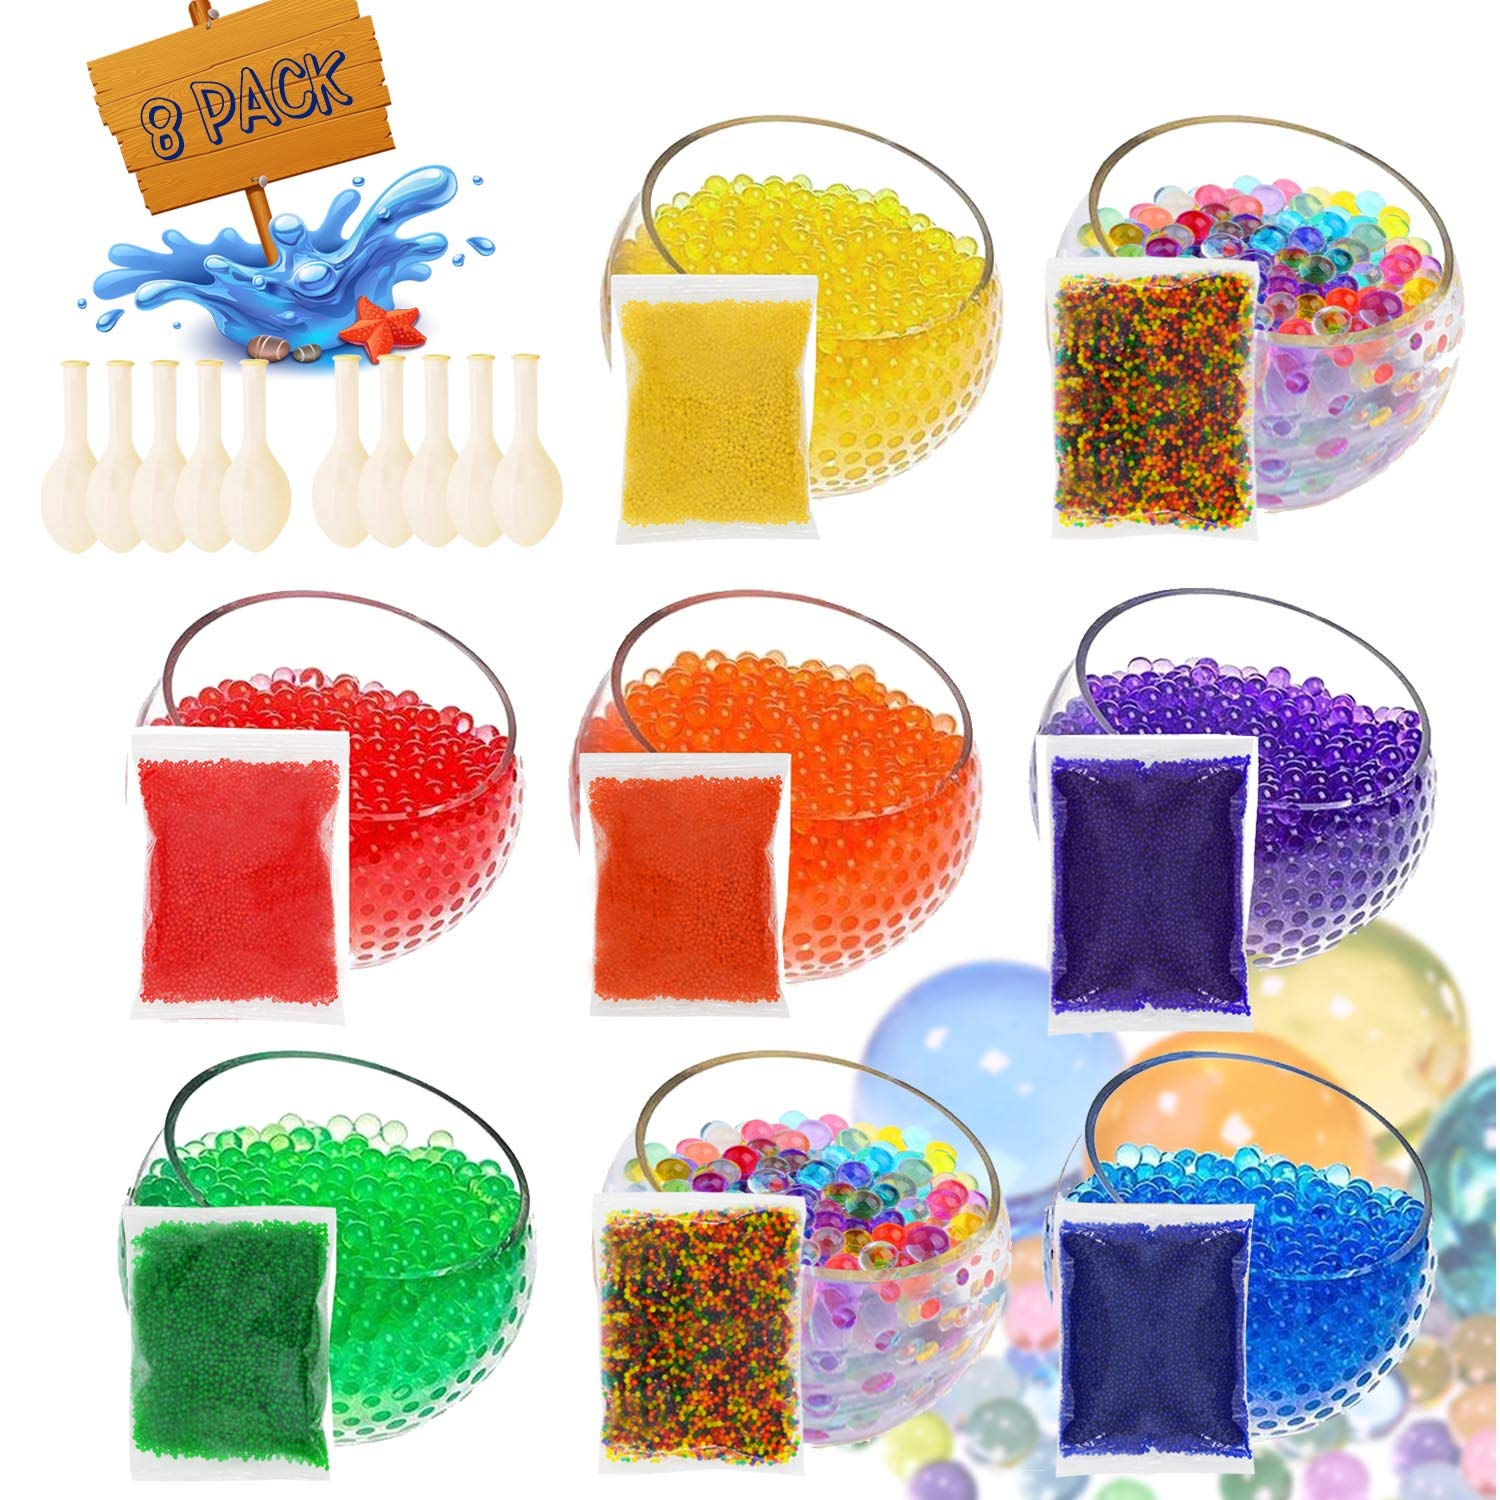 U-Goforst Water Beads Pack (80000 Small Beads/ 50 Giant Beads/10 DIY Stress Balloons) Spa Refill Sensory Kids Toys Growing Balls Orbies Ice Jelly Water Gel Bead Plants Vases and Decoration Maifei